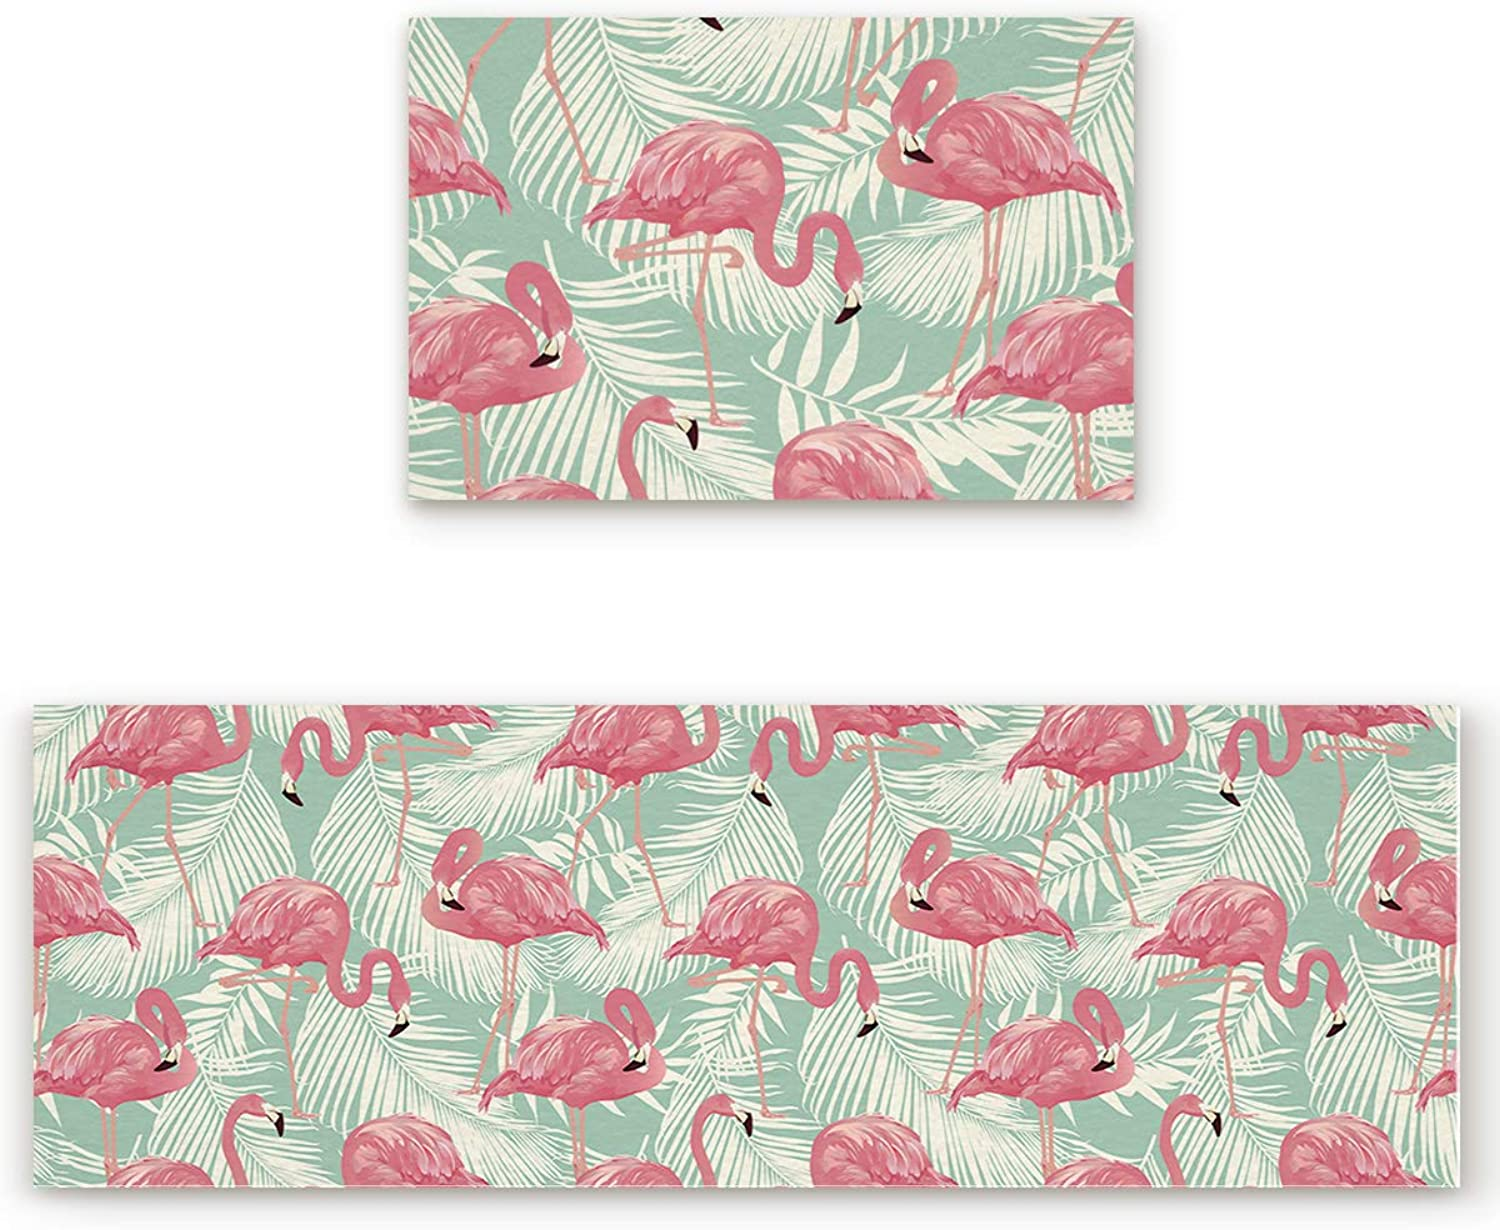 SODIKA 2 Pieces Kitchen Rug Set,Non-Skid Slip Washable Doormat Floor Runner Bathroom Area Rug Carpet,Tropical Plant Pink Flamingos (19.7x31.5in+19.7x63 inches)